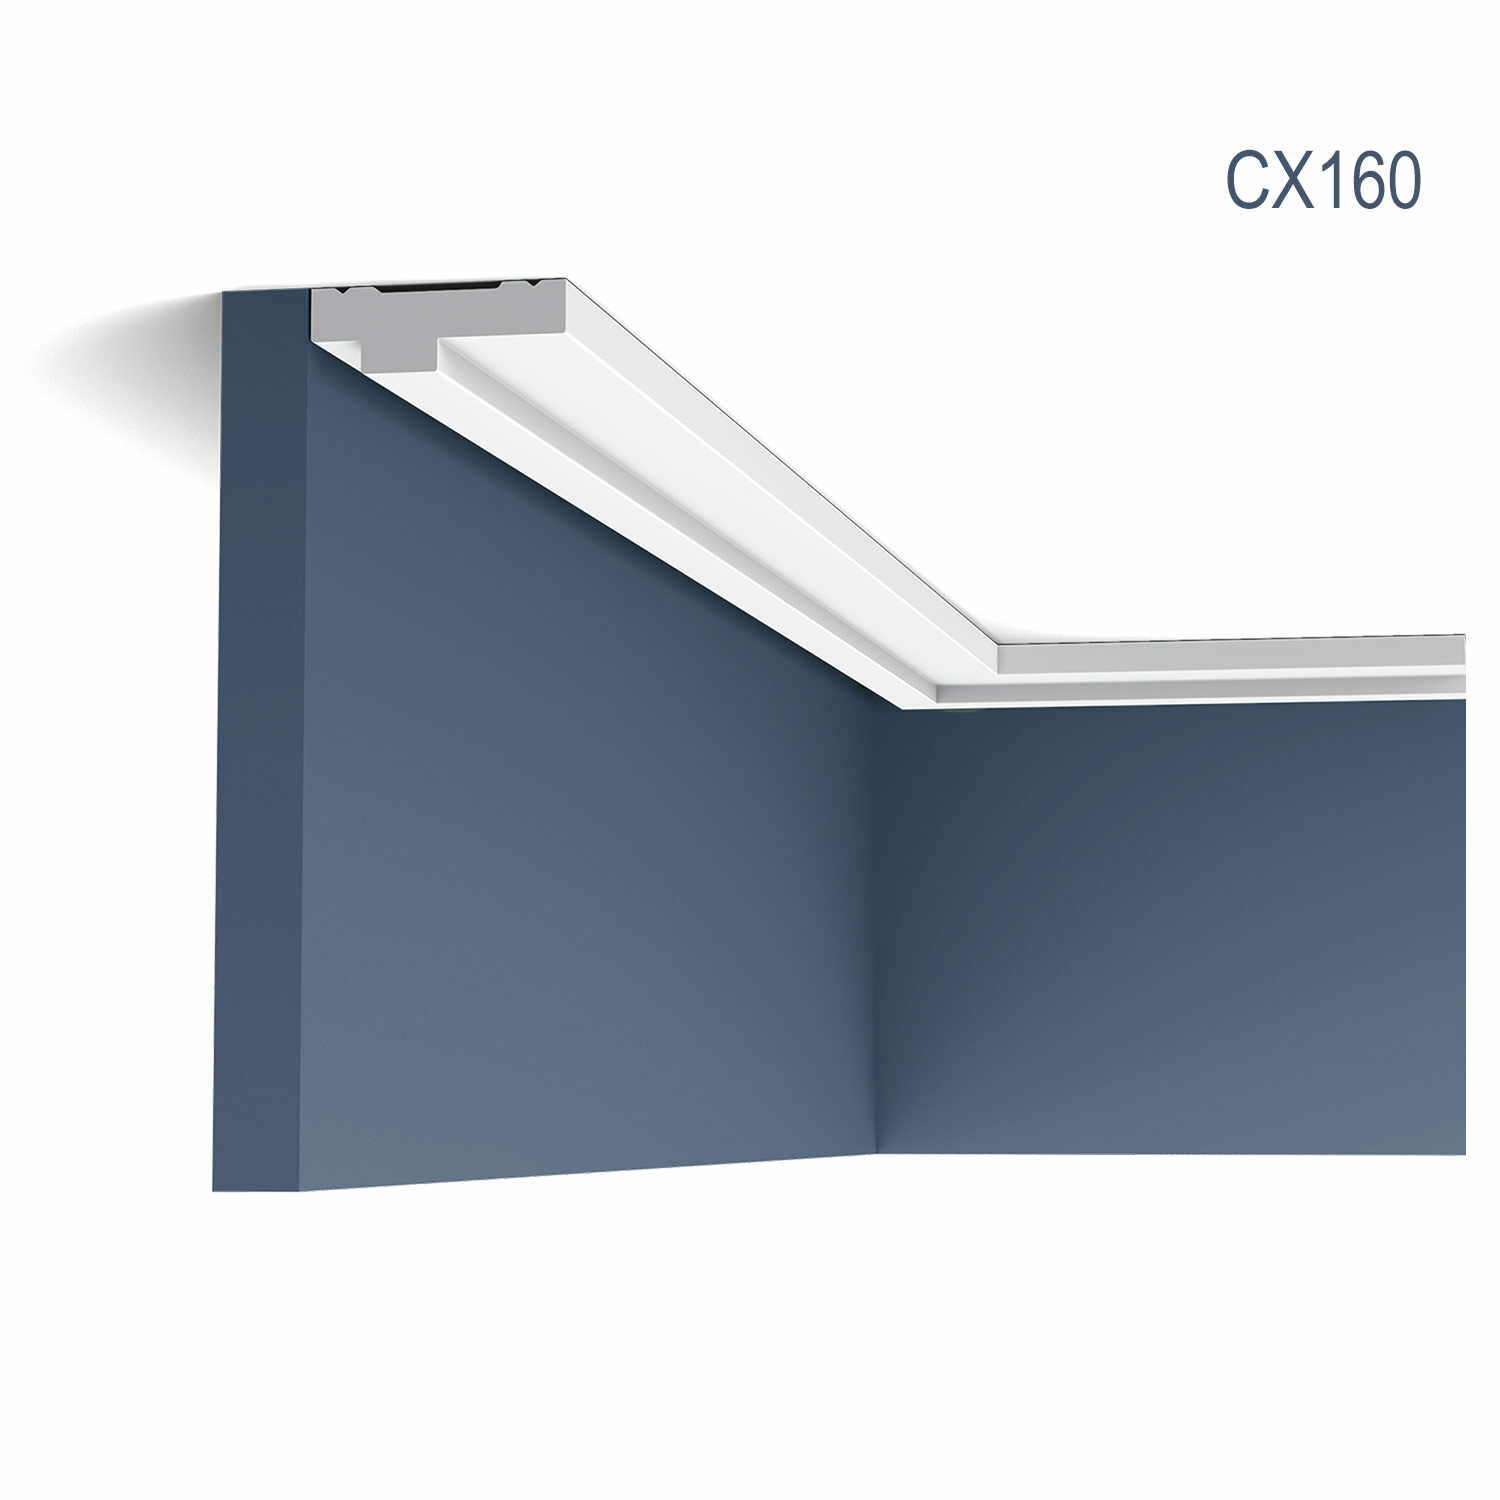 Cornisa Axxent CX160, Dimensiuni: 200 X 1.3 X 3.9 cm, Orac Decor